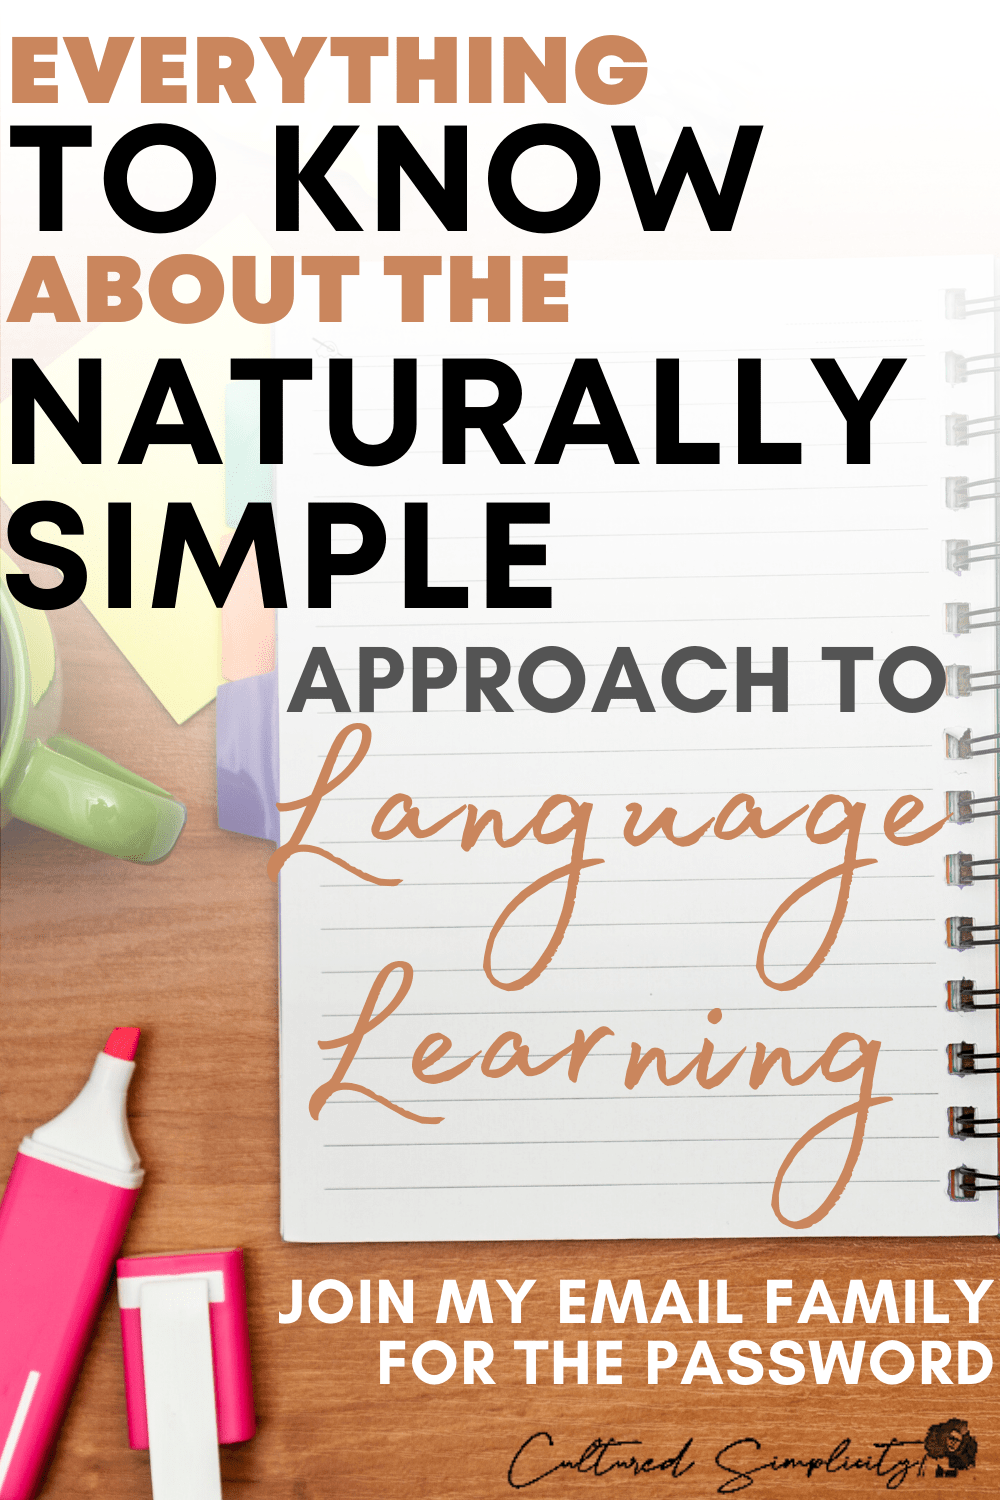 """Protected: Everything to know about the """"Naturally Simple"""" approach to language acquisition"""